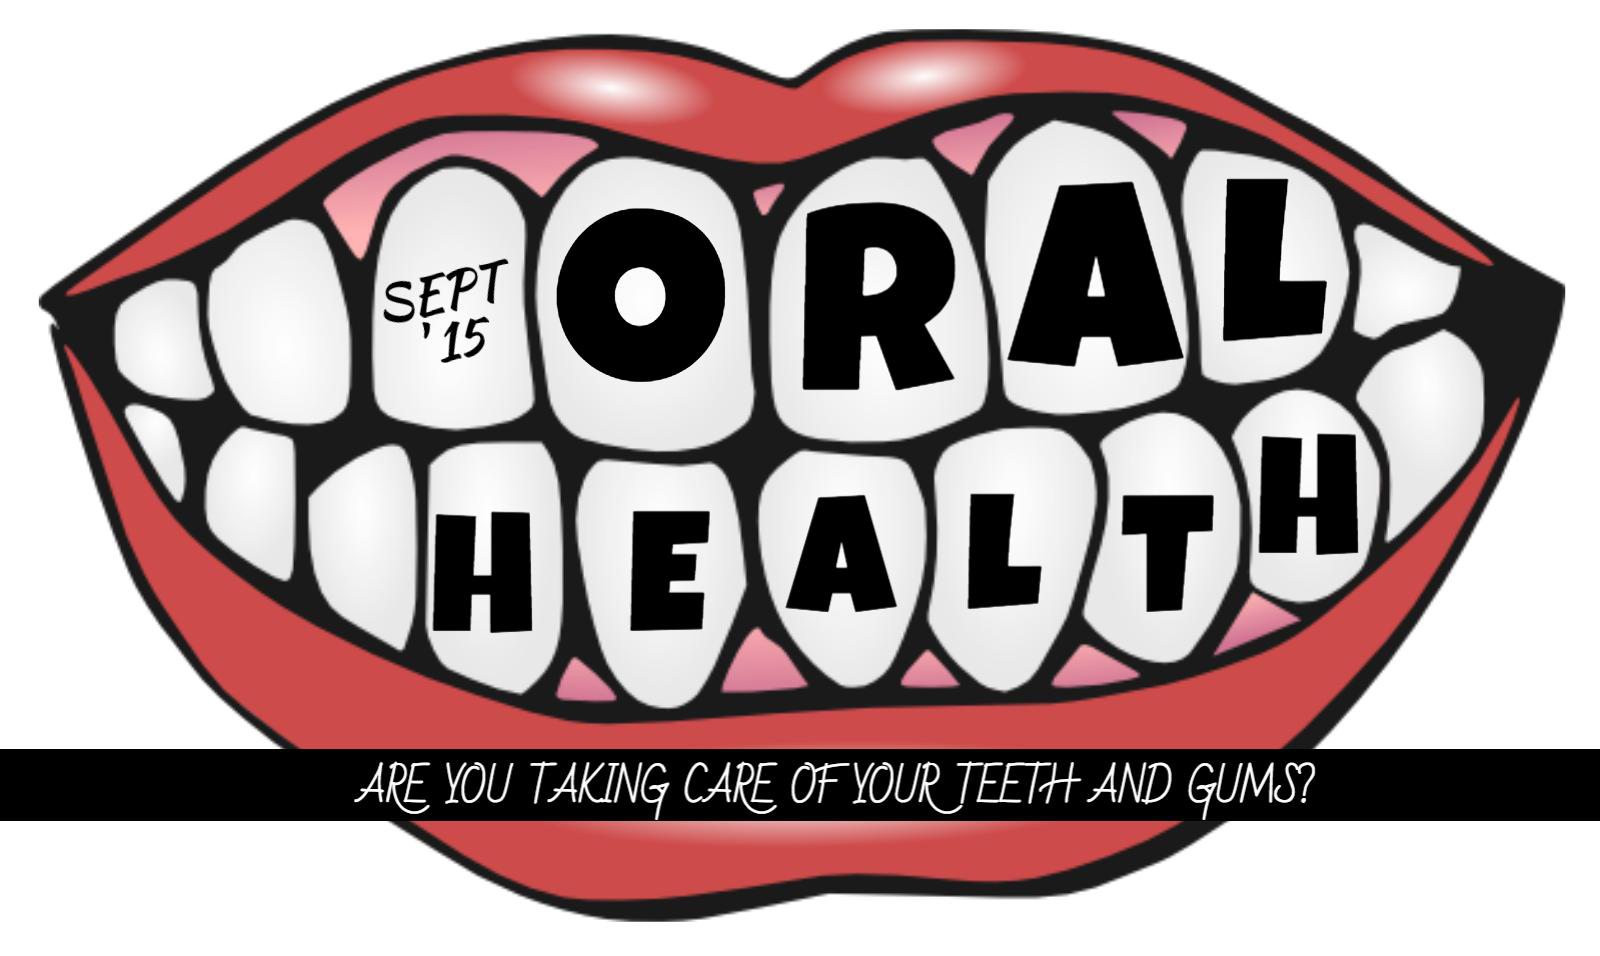 ARE You Taking Care Of Your Teeth And Gums